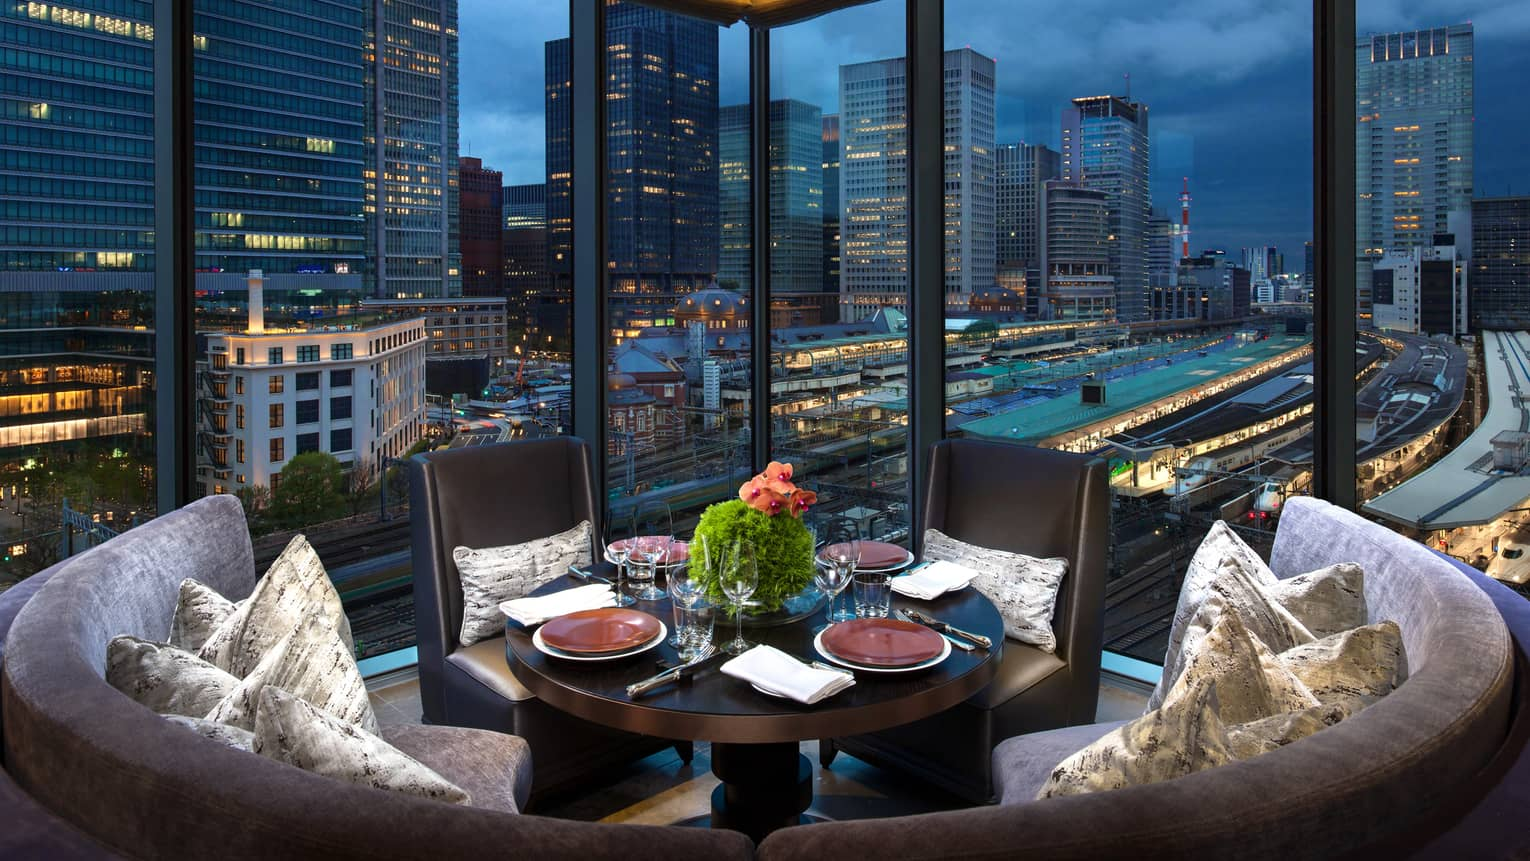 Circular sofa, velvet pillows, cocktail table by floor-to-ceiling window at Motif Restaurant